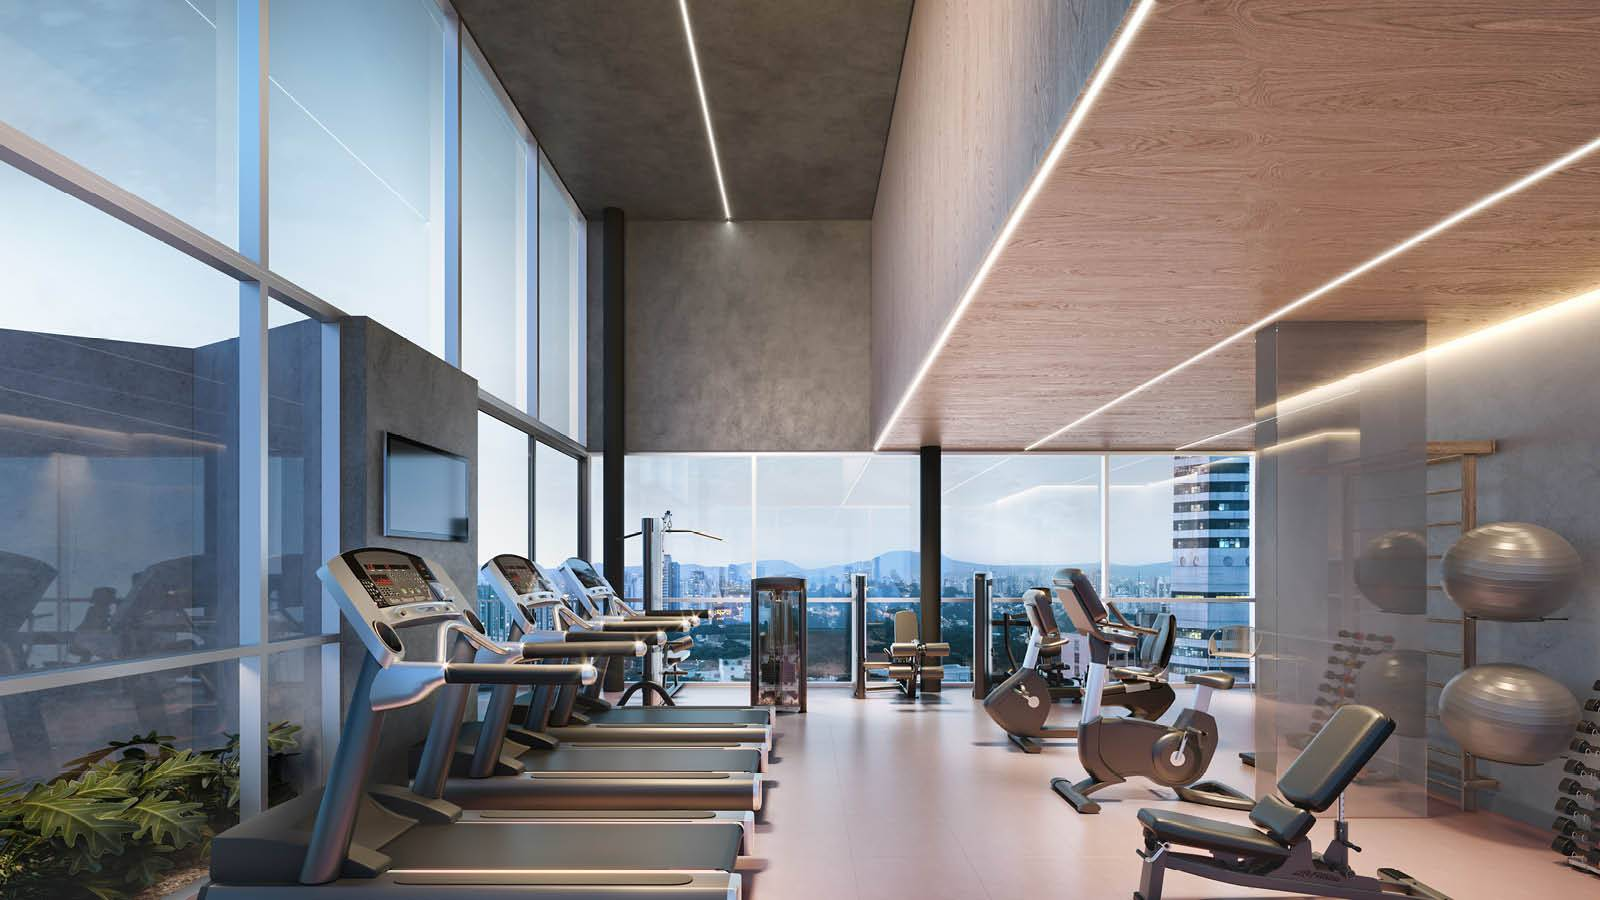 GYM - Nord Residential - SPOL Architects